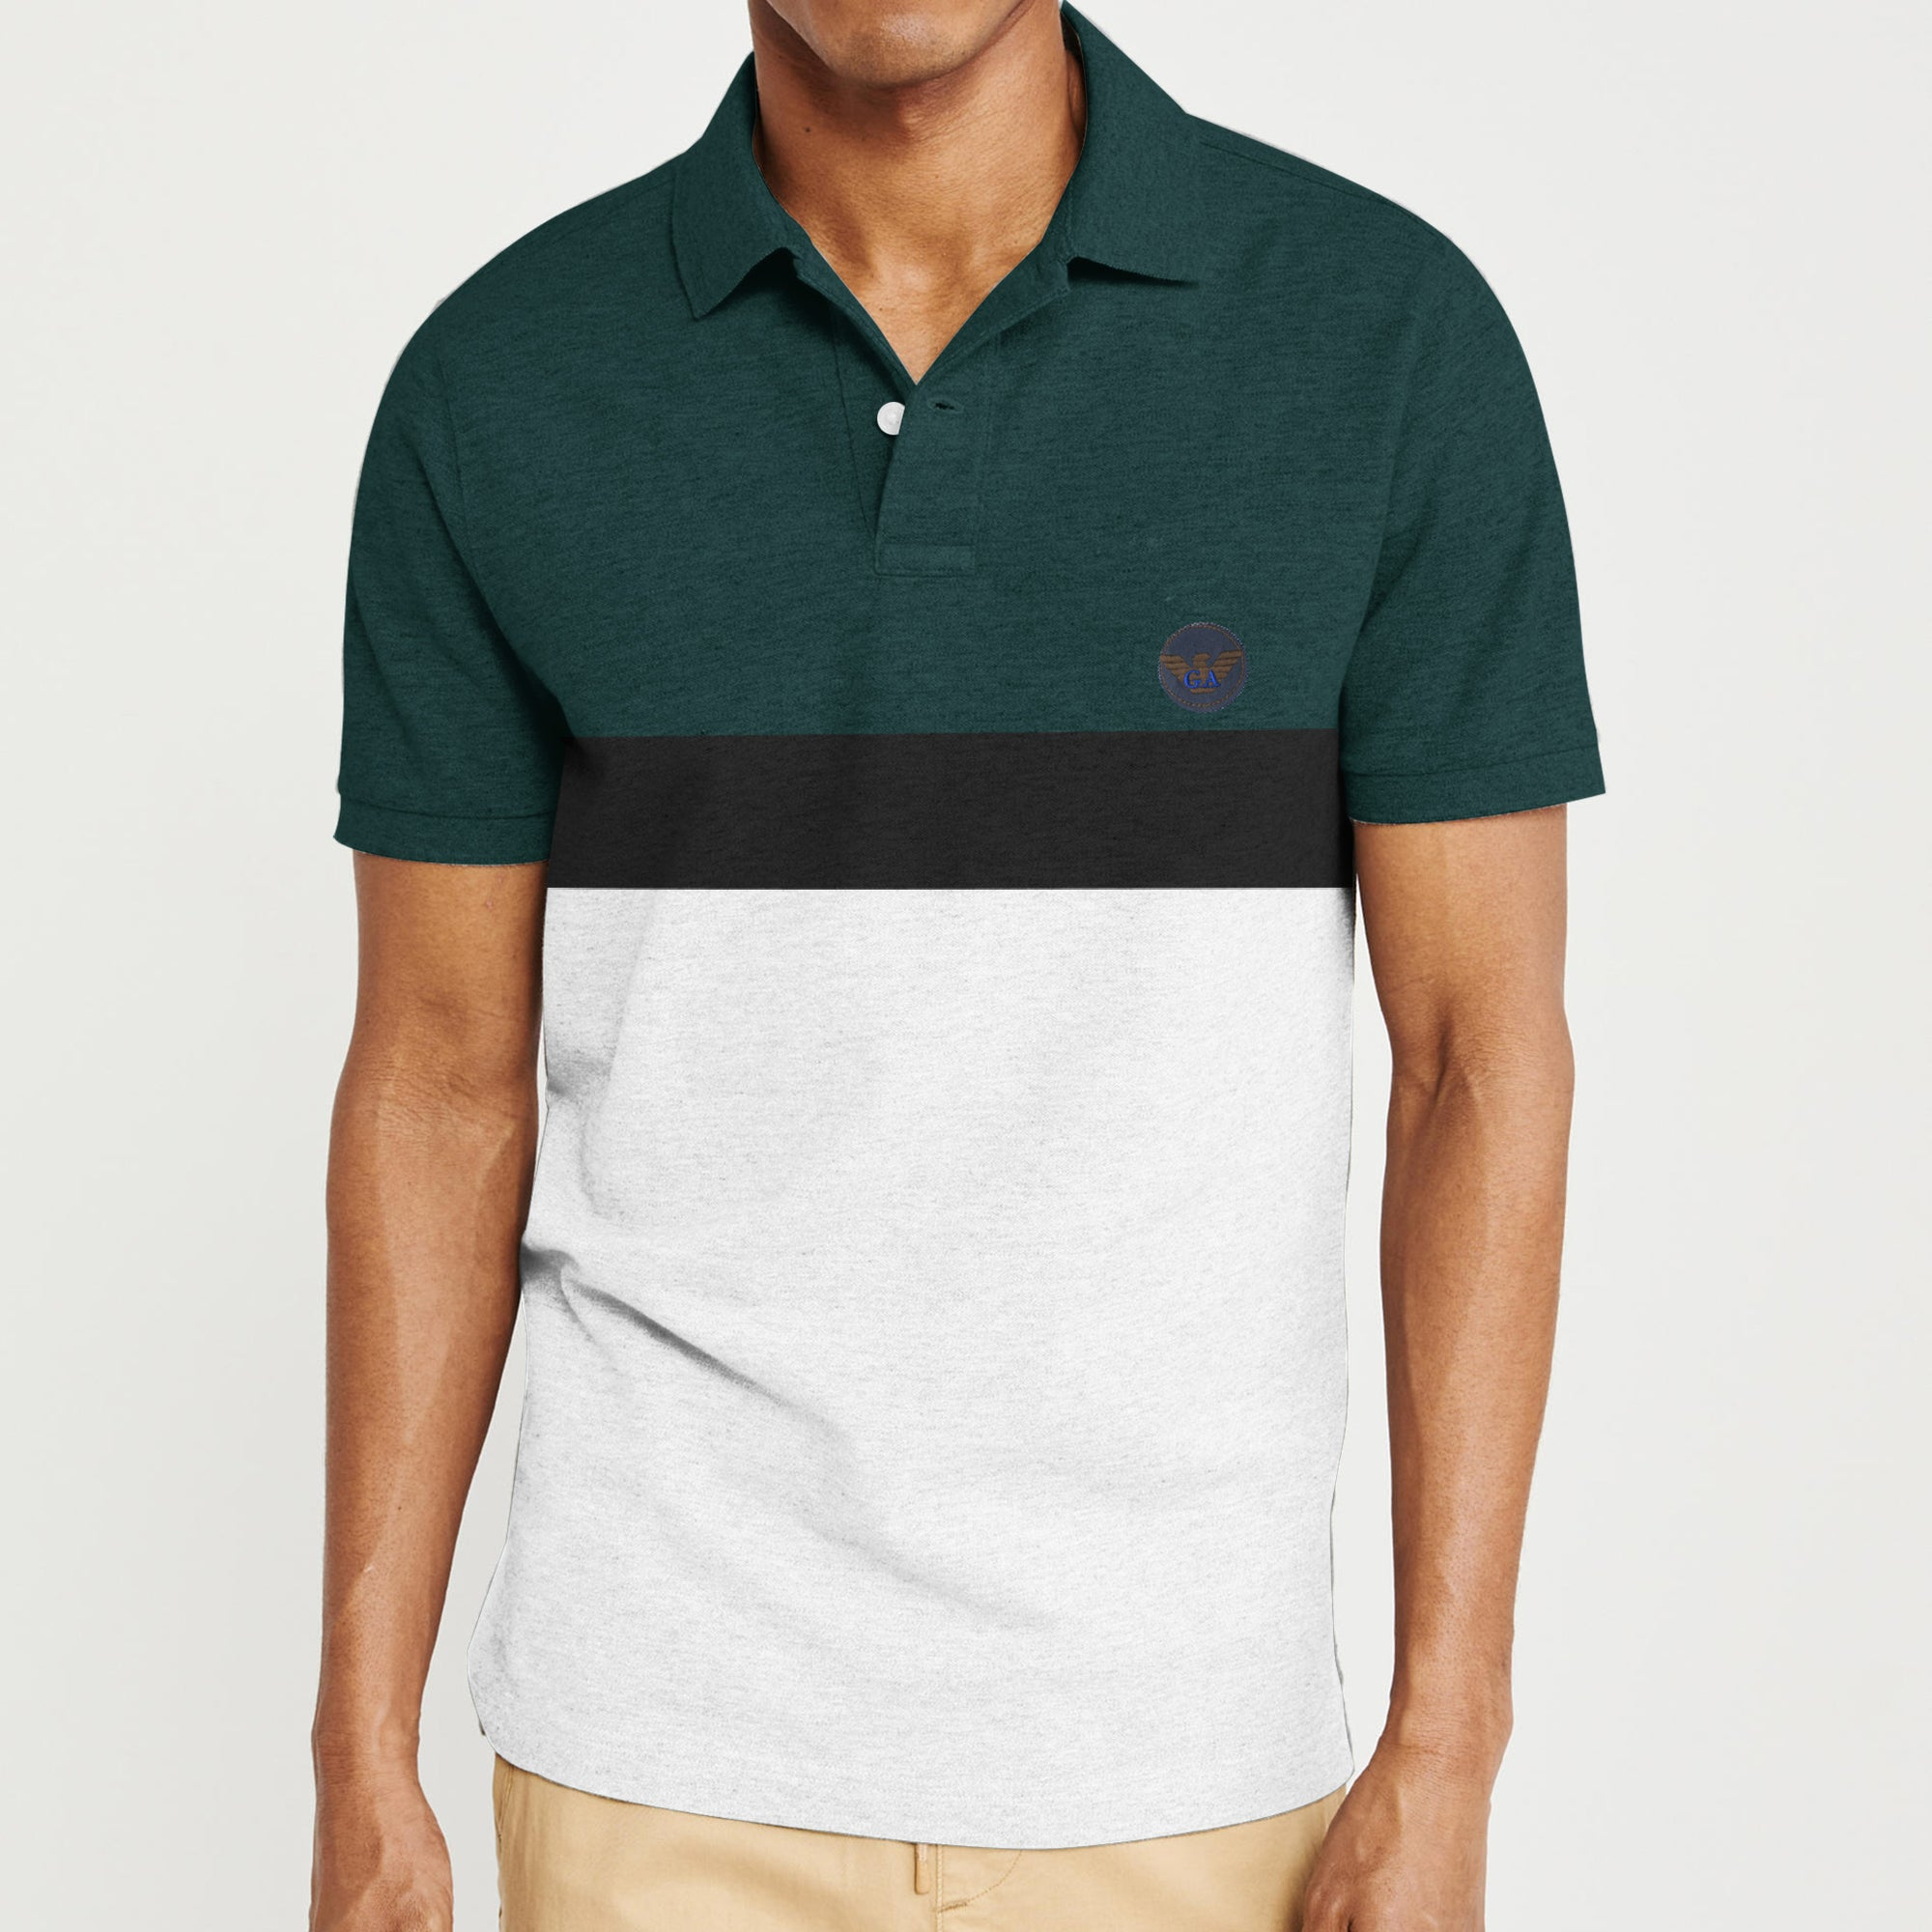 The Modern Short Sleeve P.Q Polo Shirt For Men-Dark Green with Stripe-BE8419